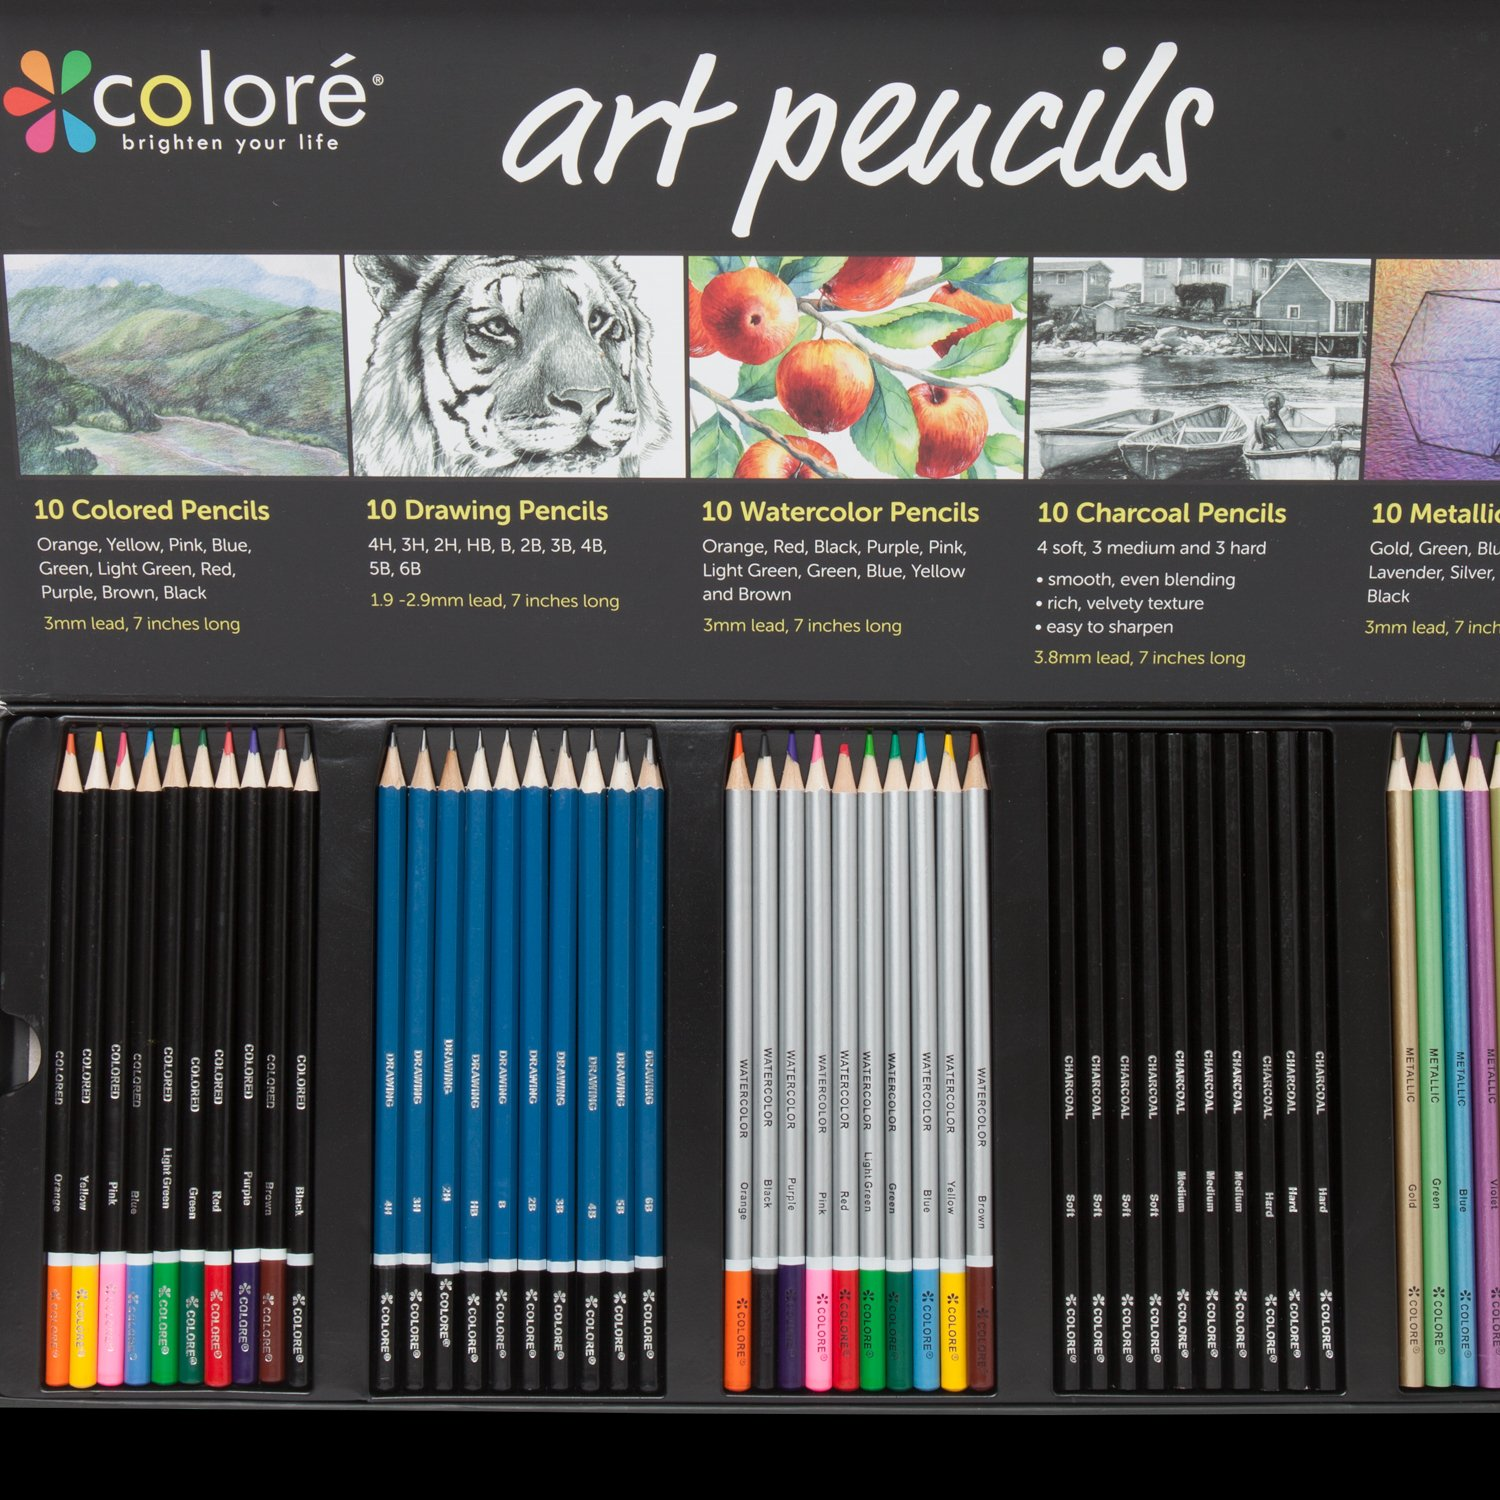 Colore premium art pencils pack 50 assorted pencil set for coloring pages books colored watercolor drawing charcoal and metallic color